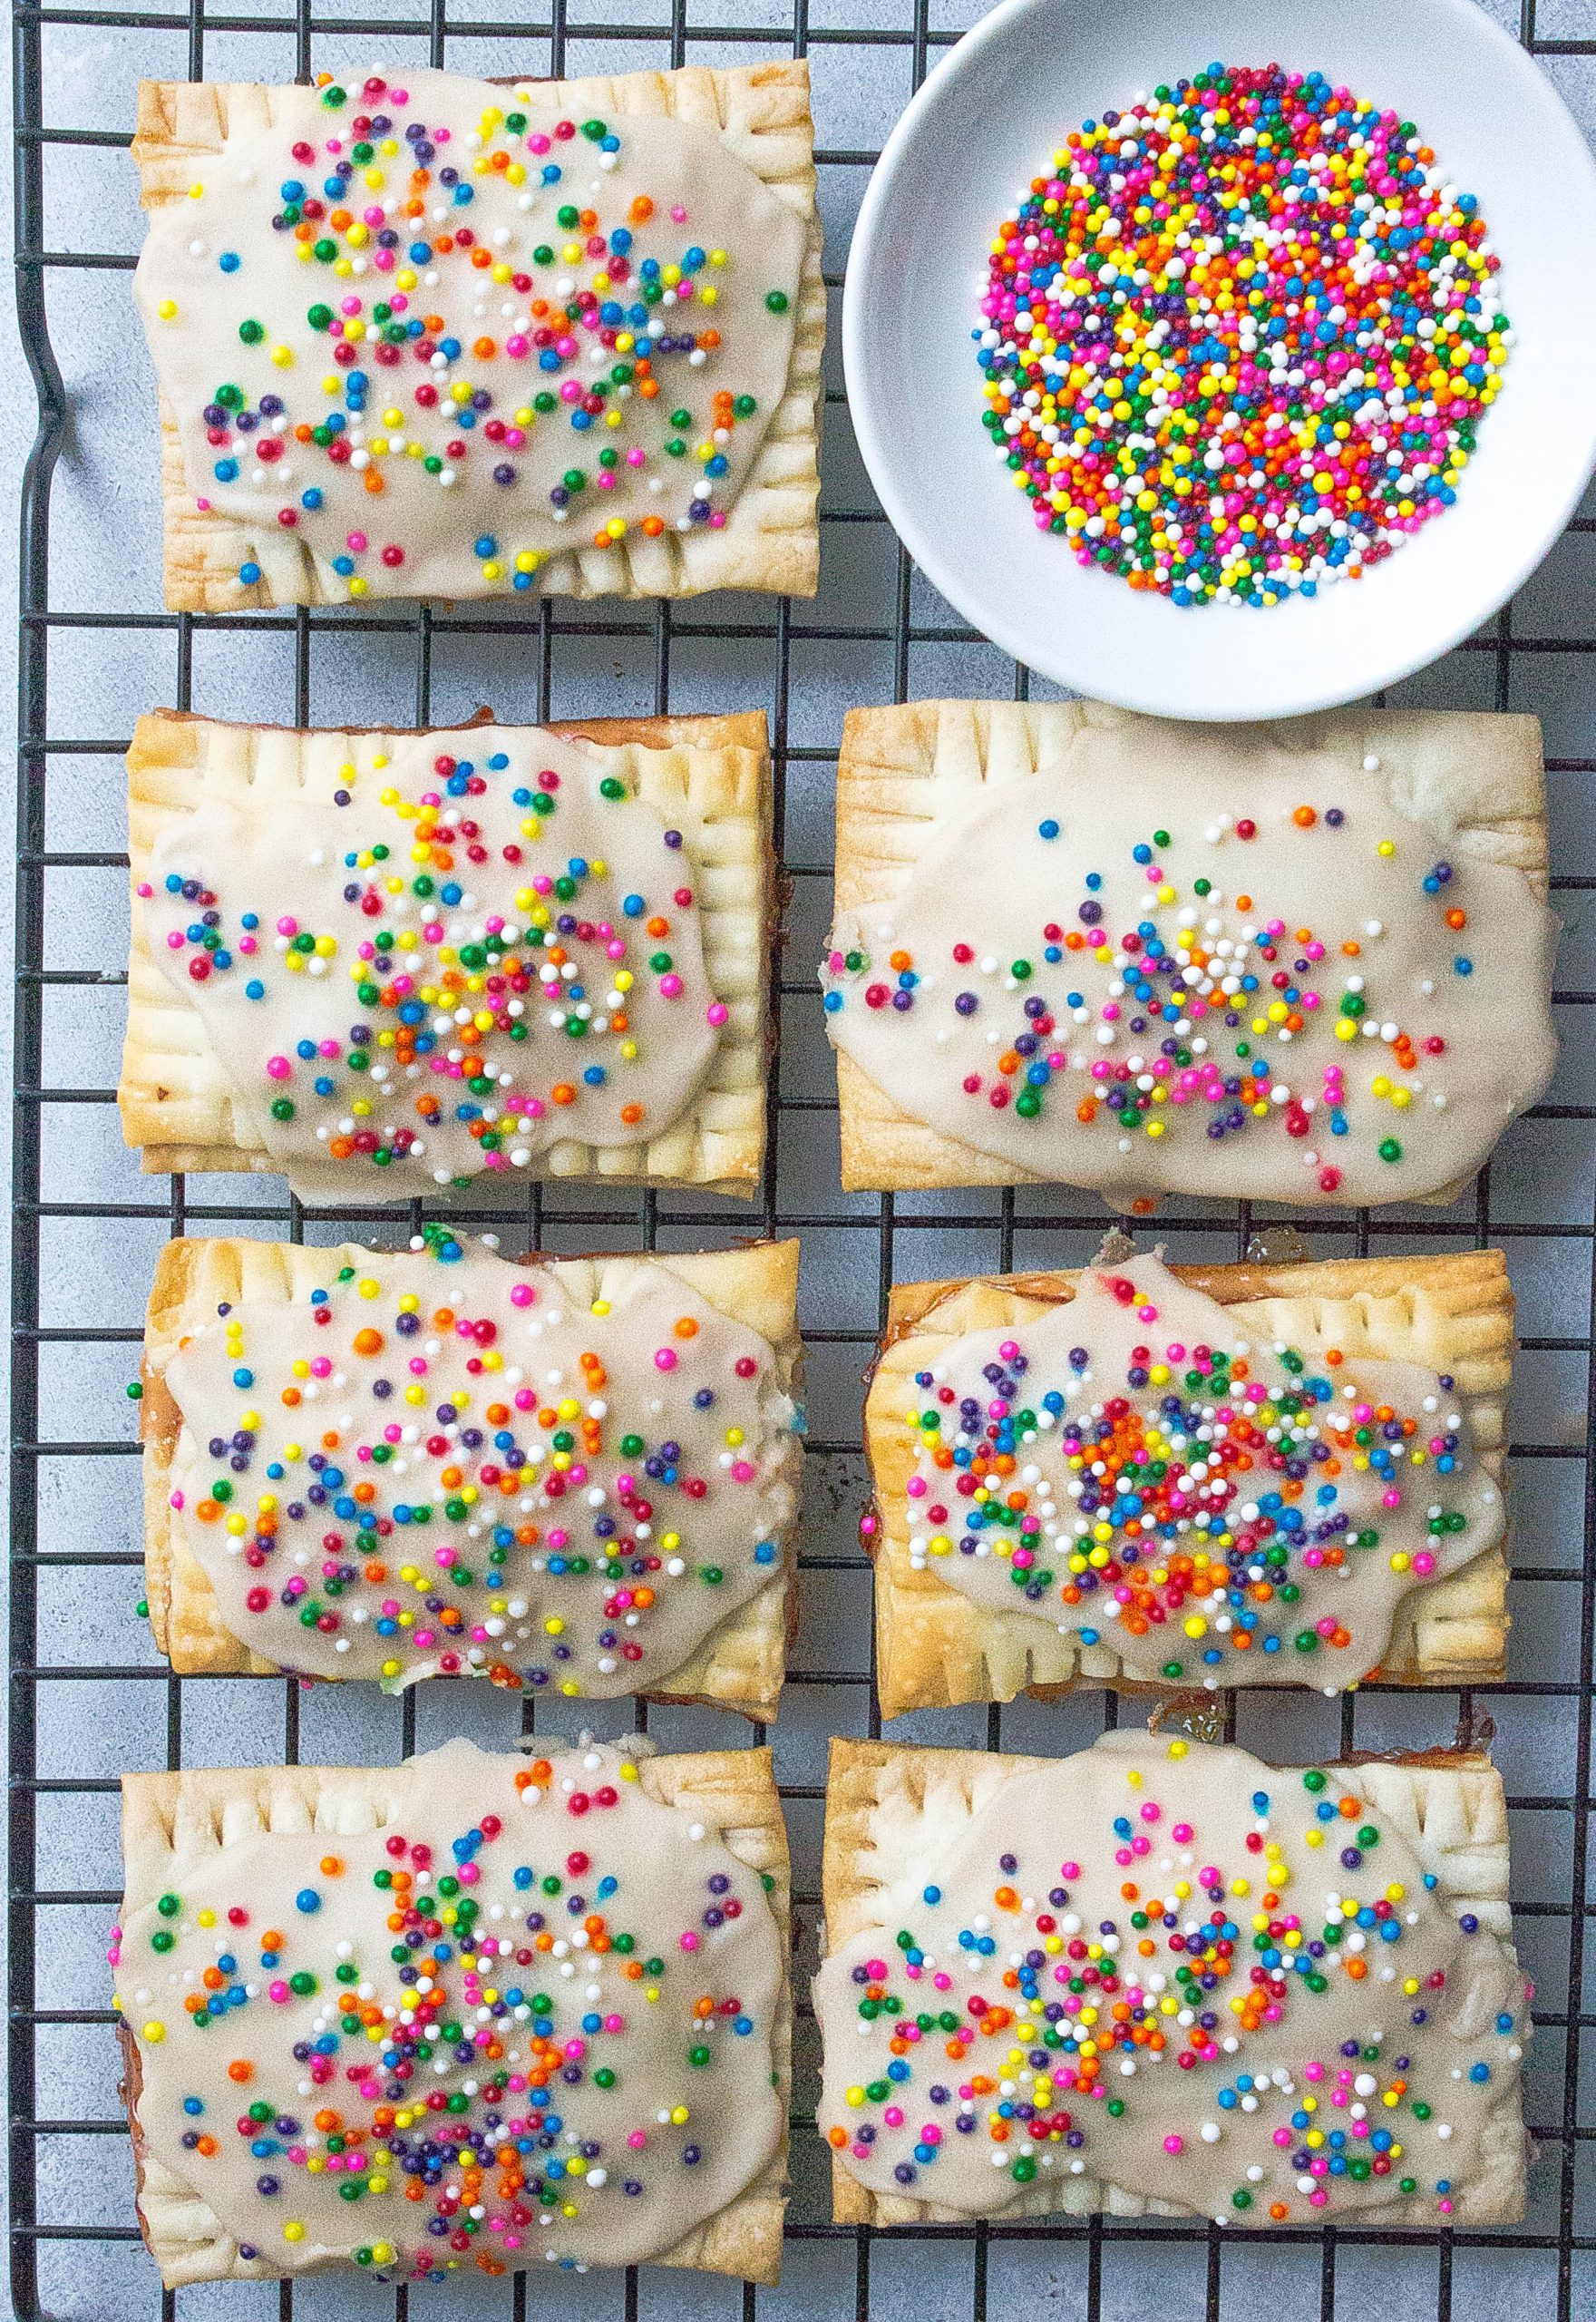 Pop Tarts on cooling rack